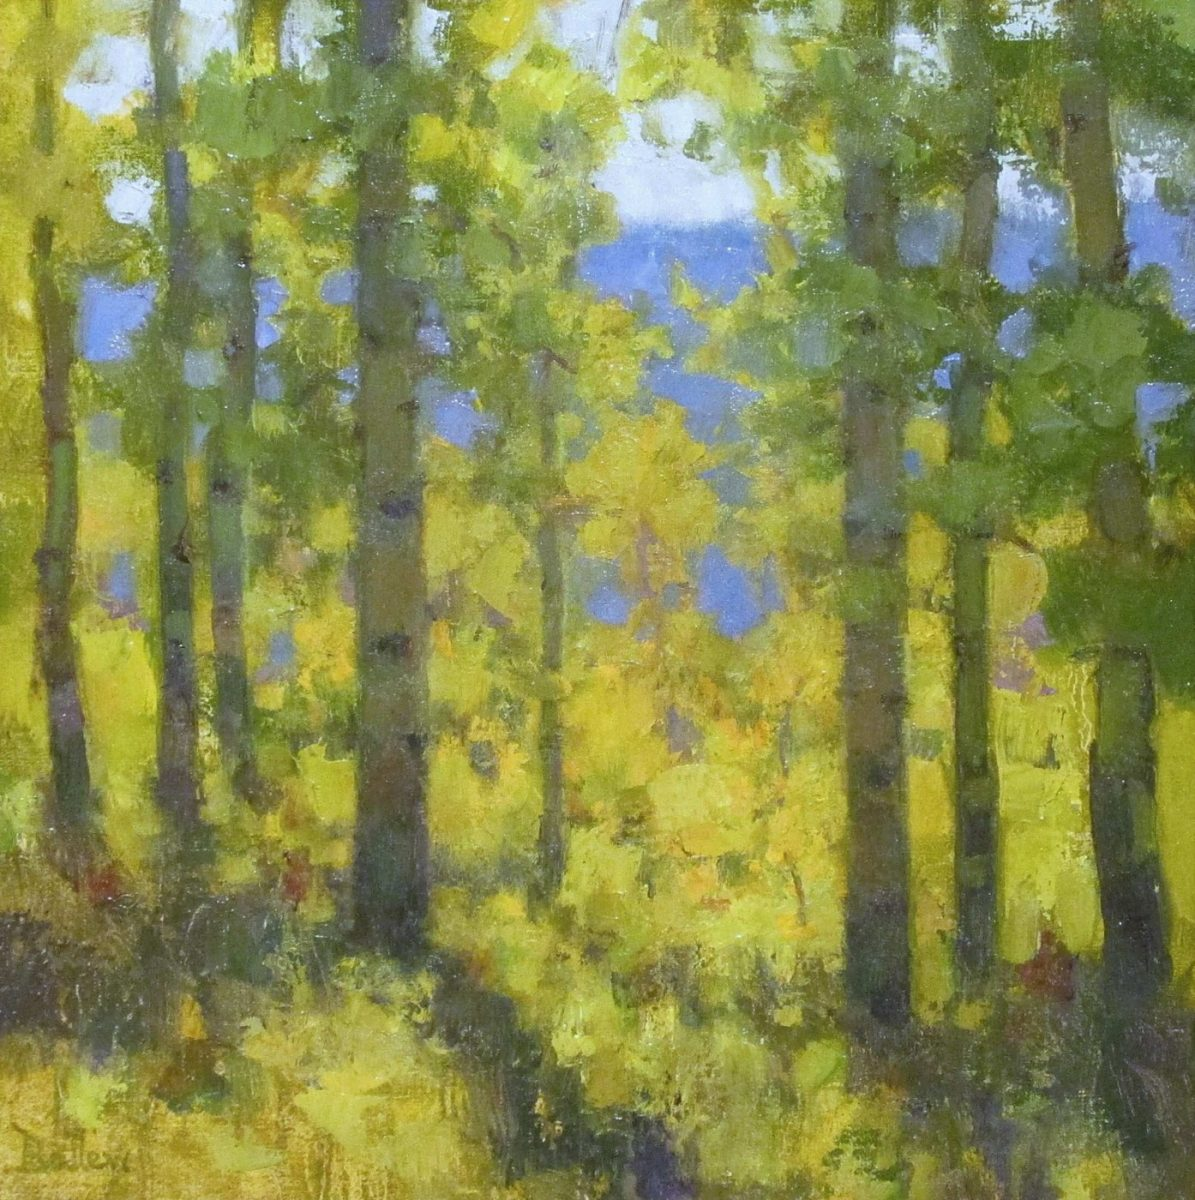 At the Edge of October by artist David Ballew